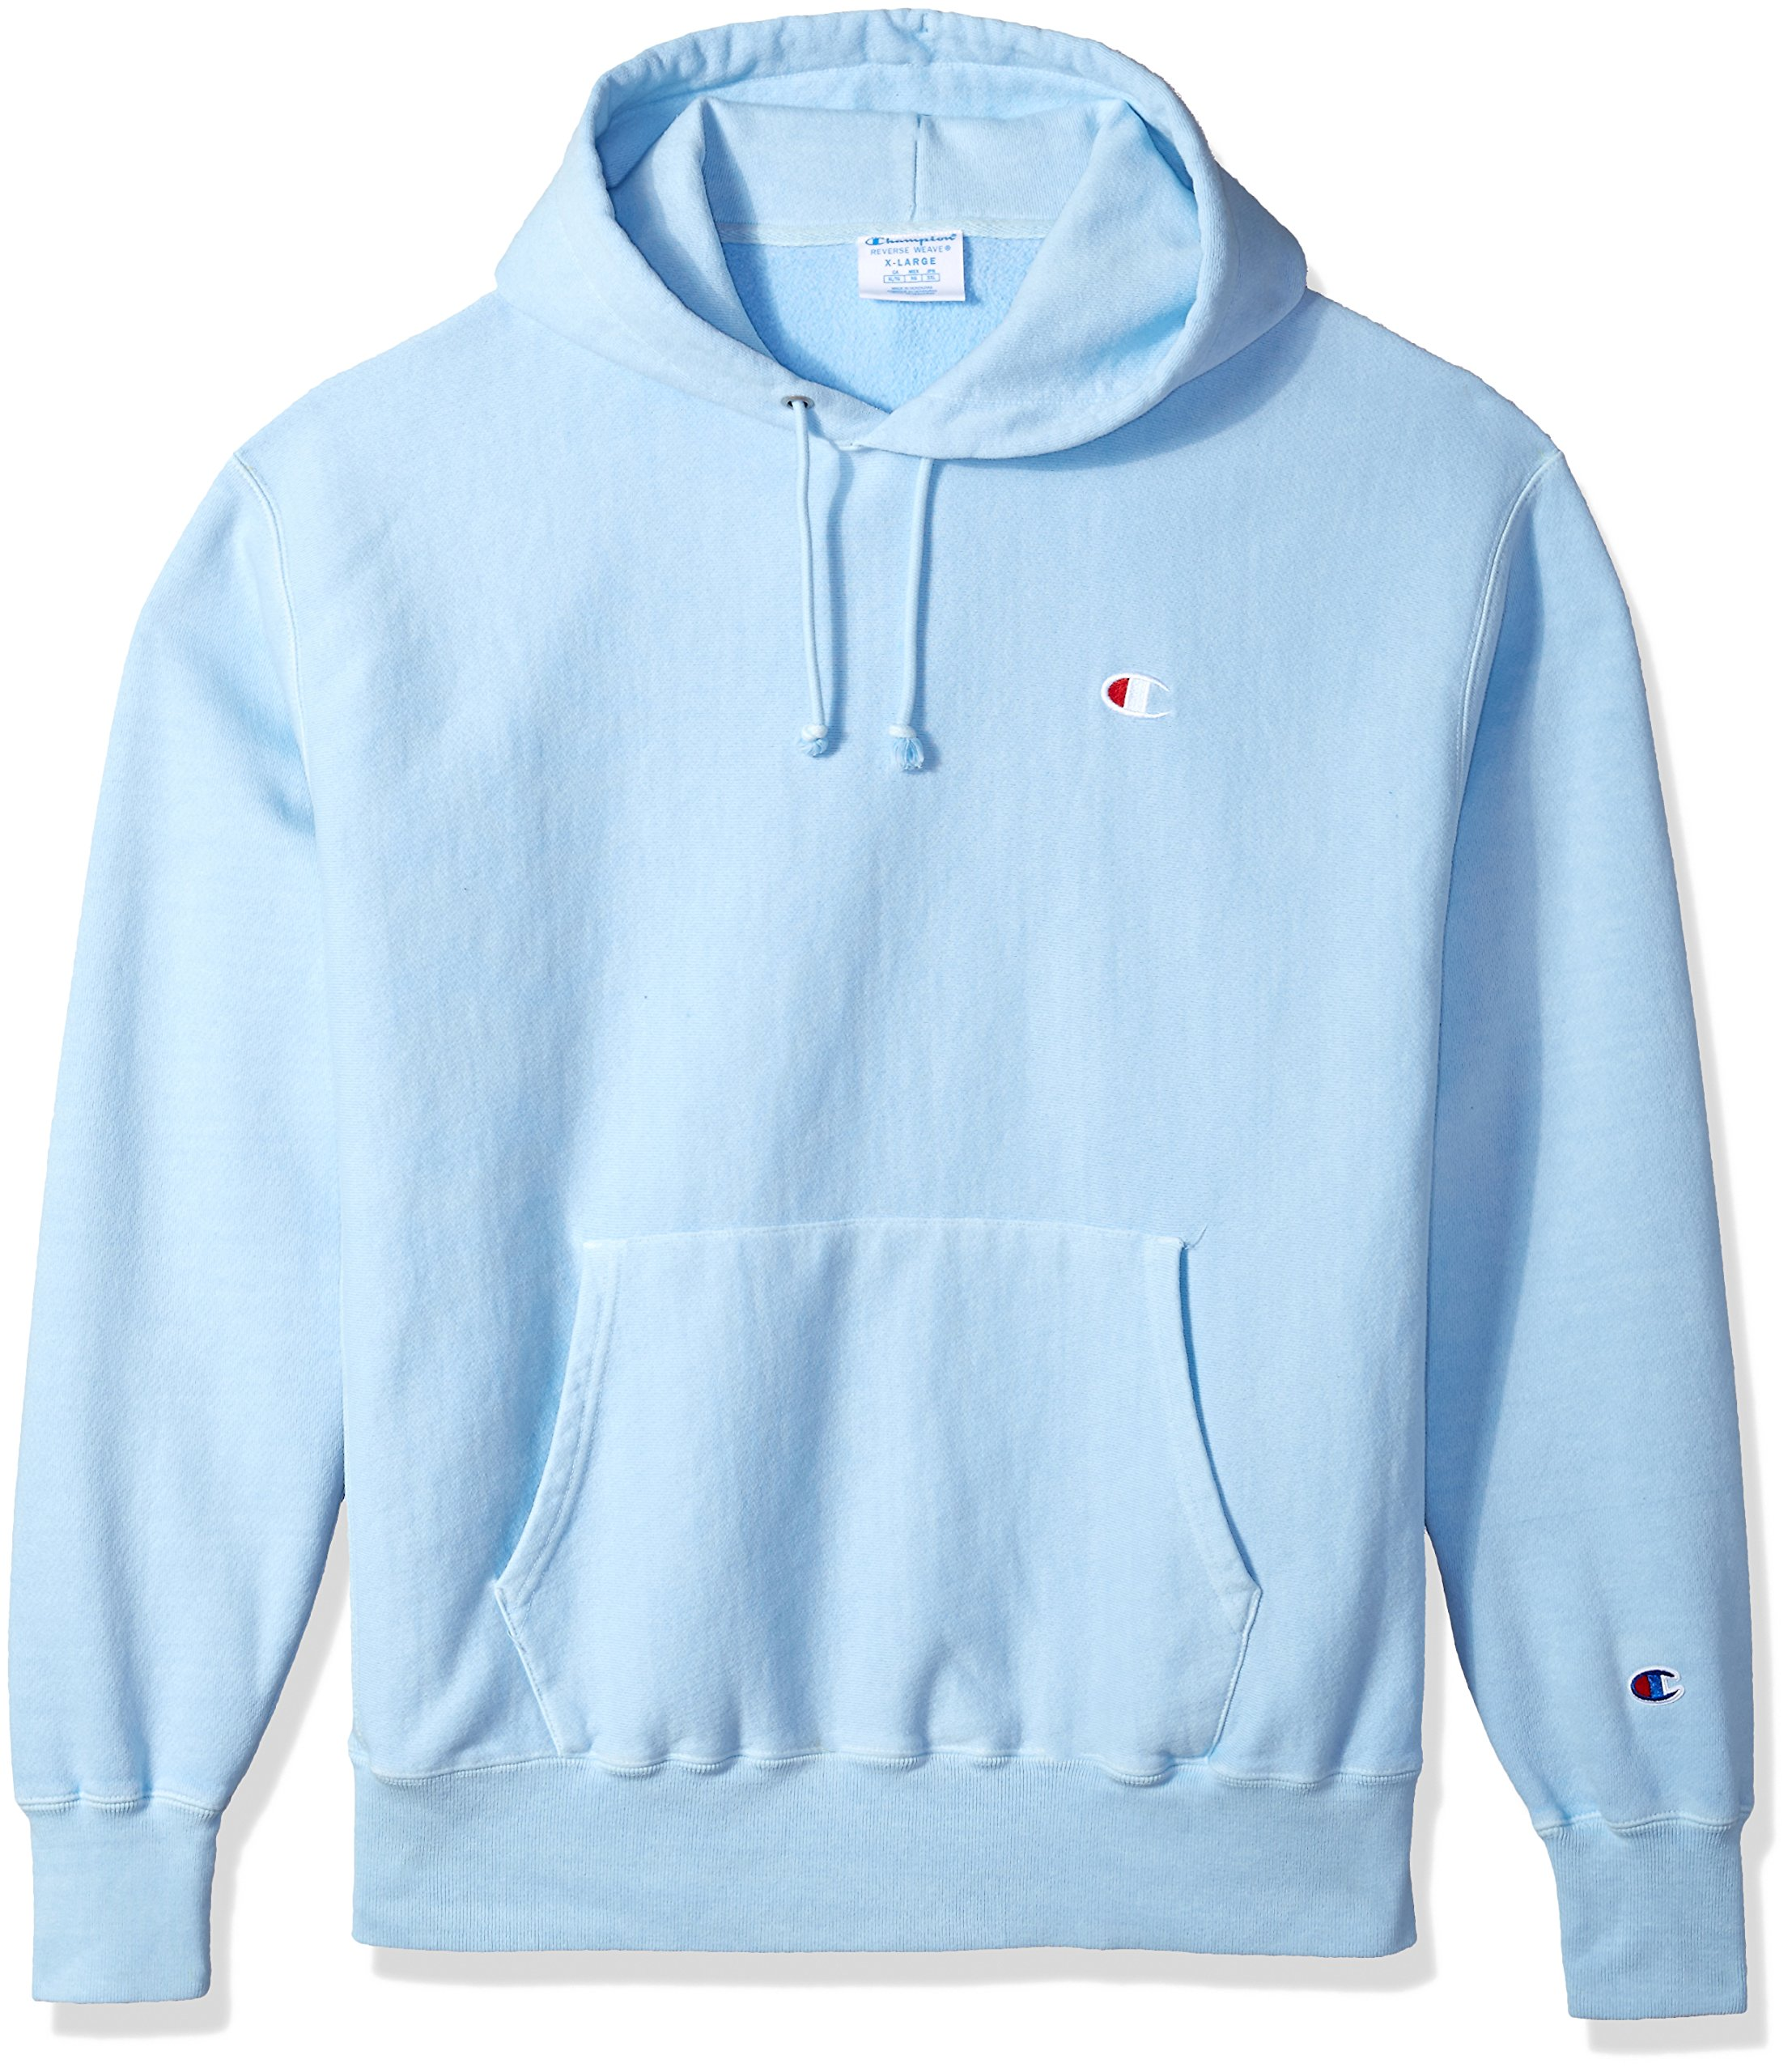 Champion LIFE Men's Reverse Weave Pullover Hoodie, Upstate Blue Pigment Dyed, L